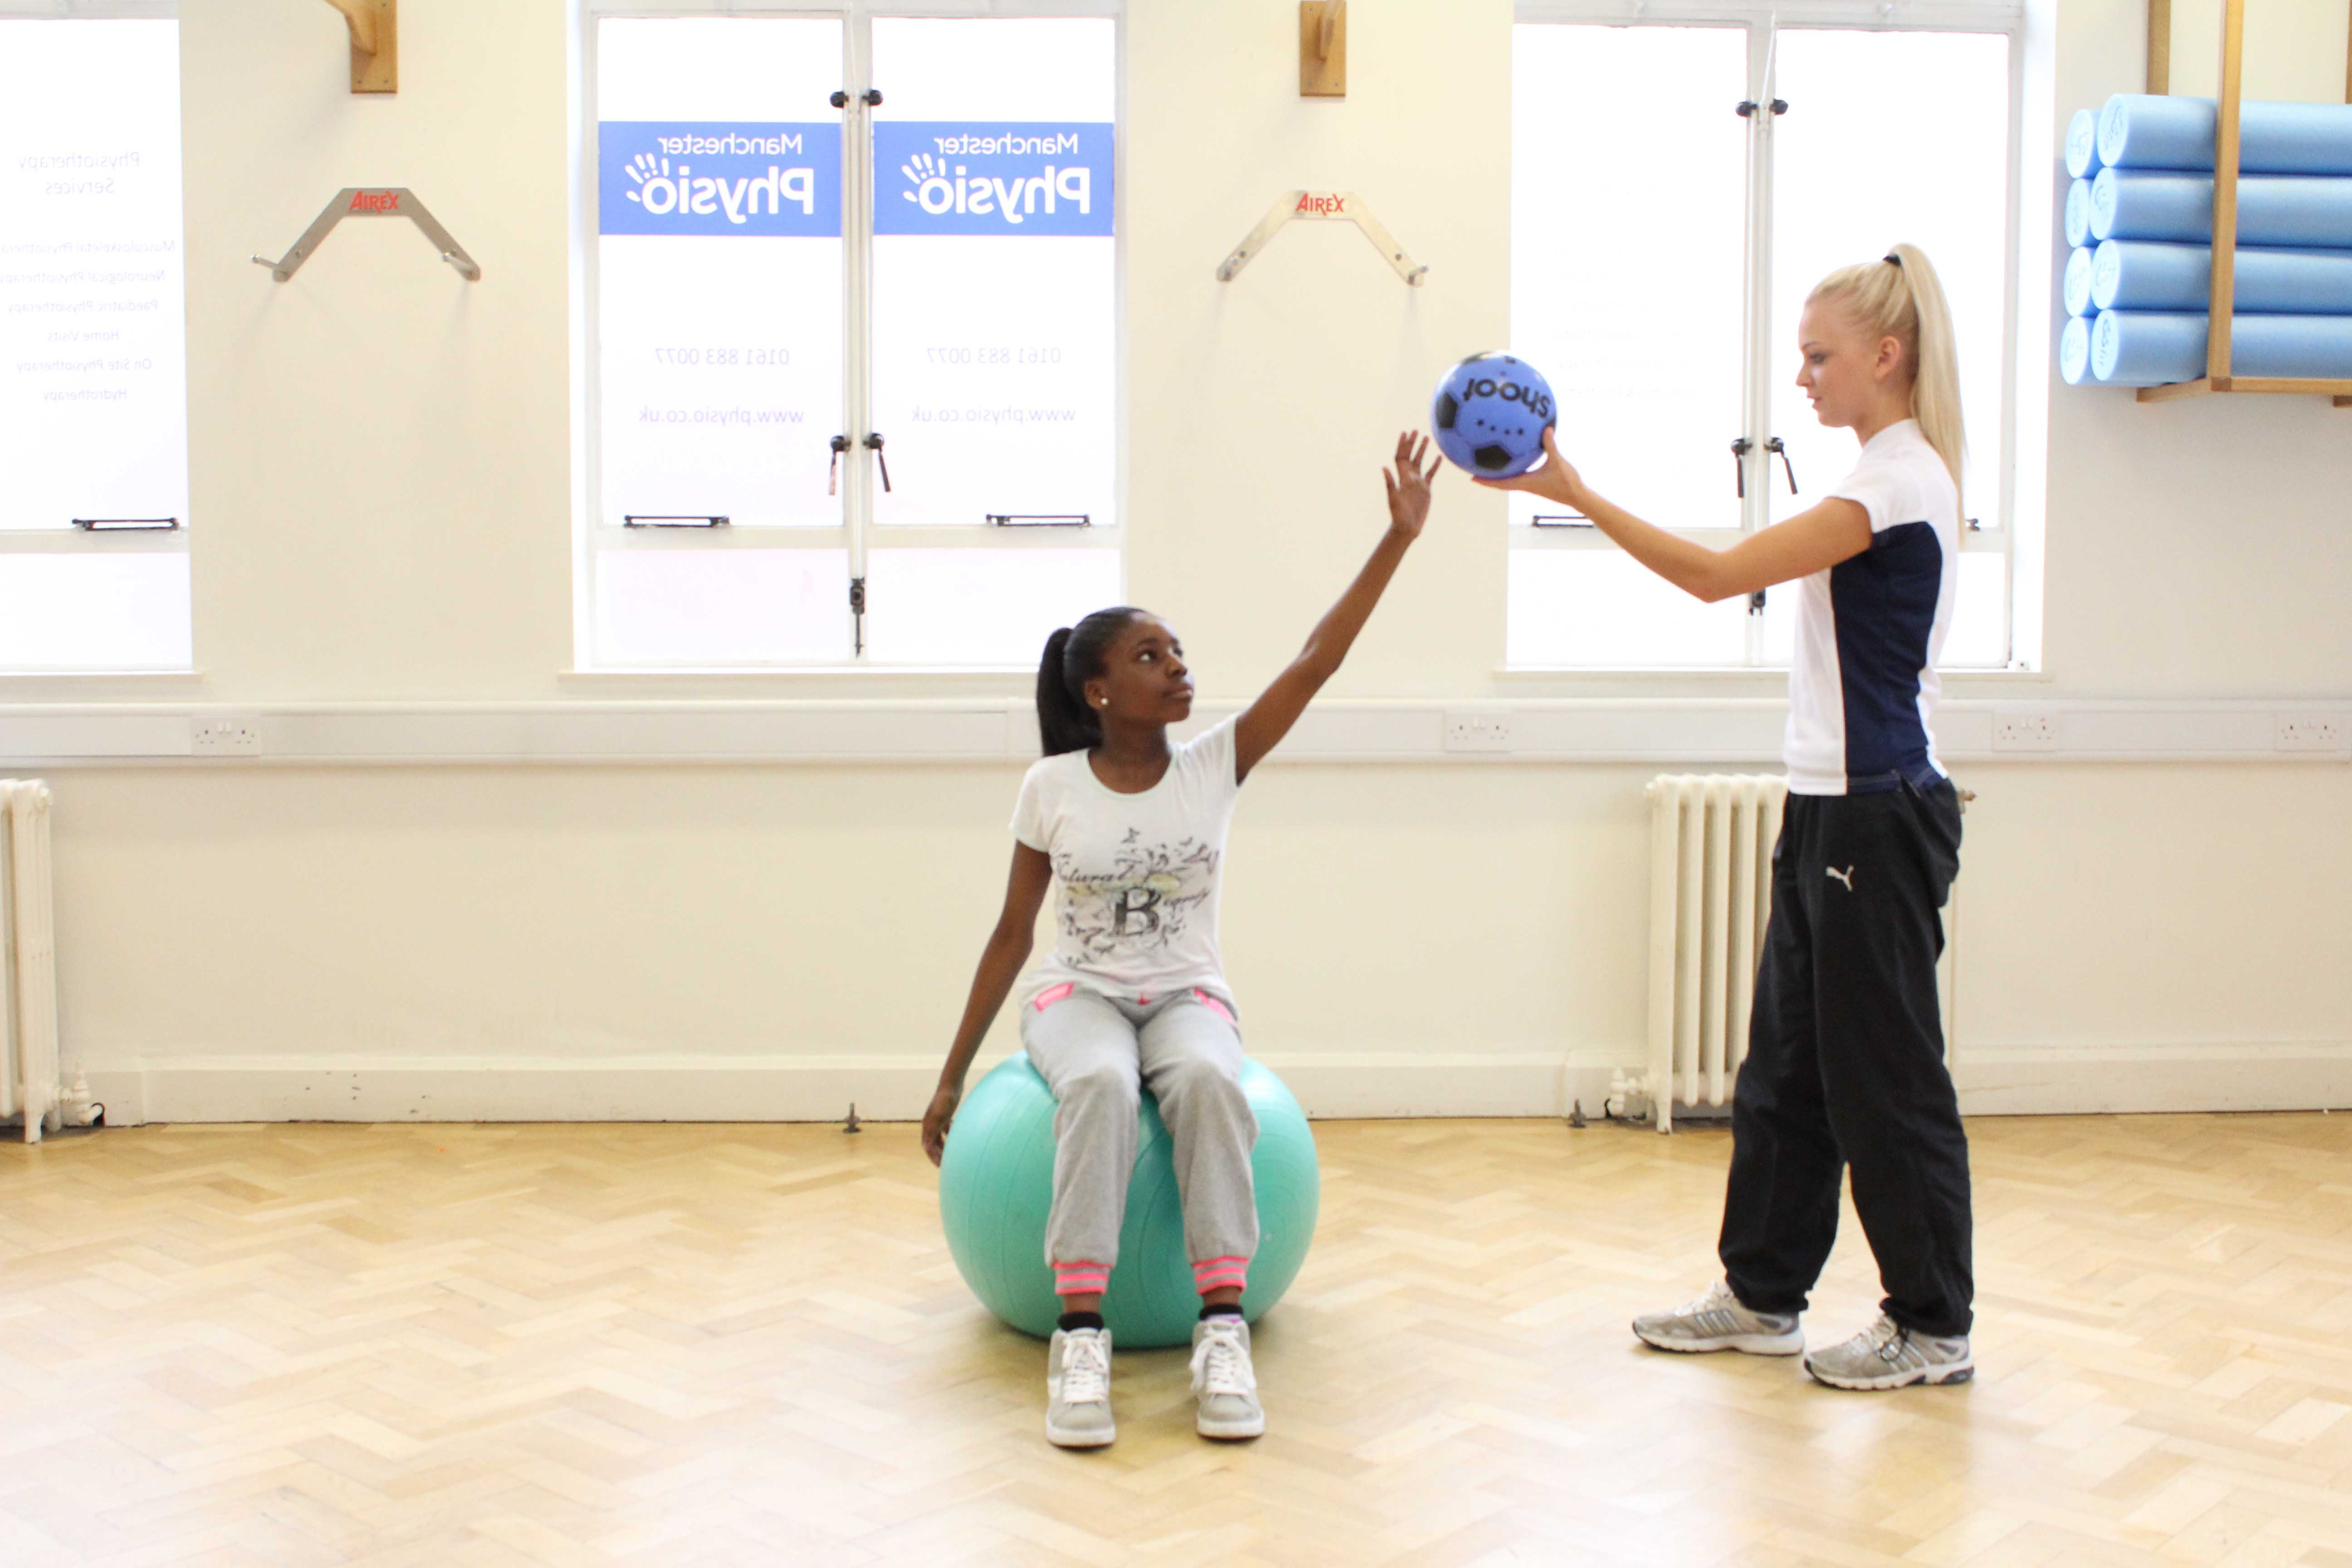 Our physiotherapist challenging a childs balance whilst incorporting fun activities within the session